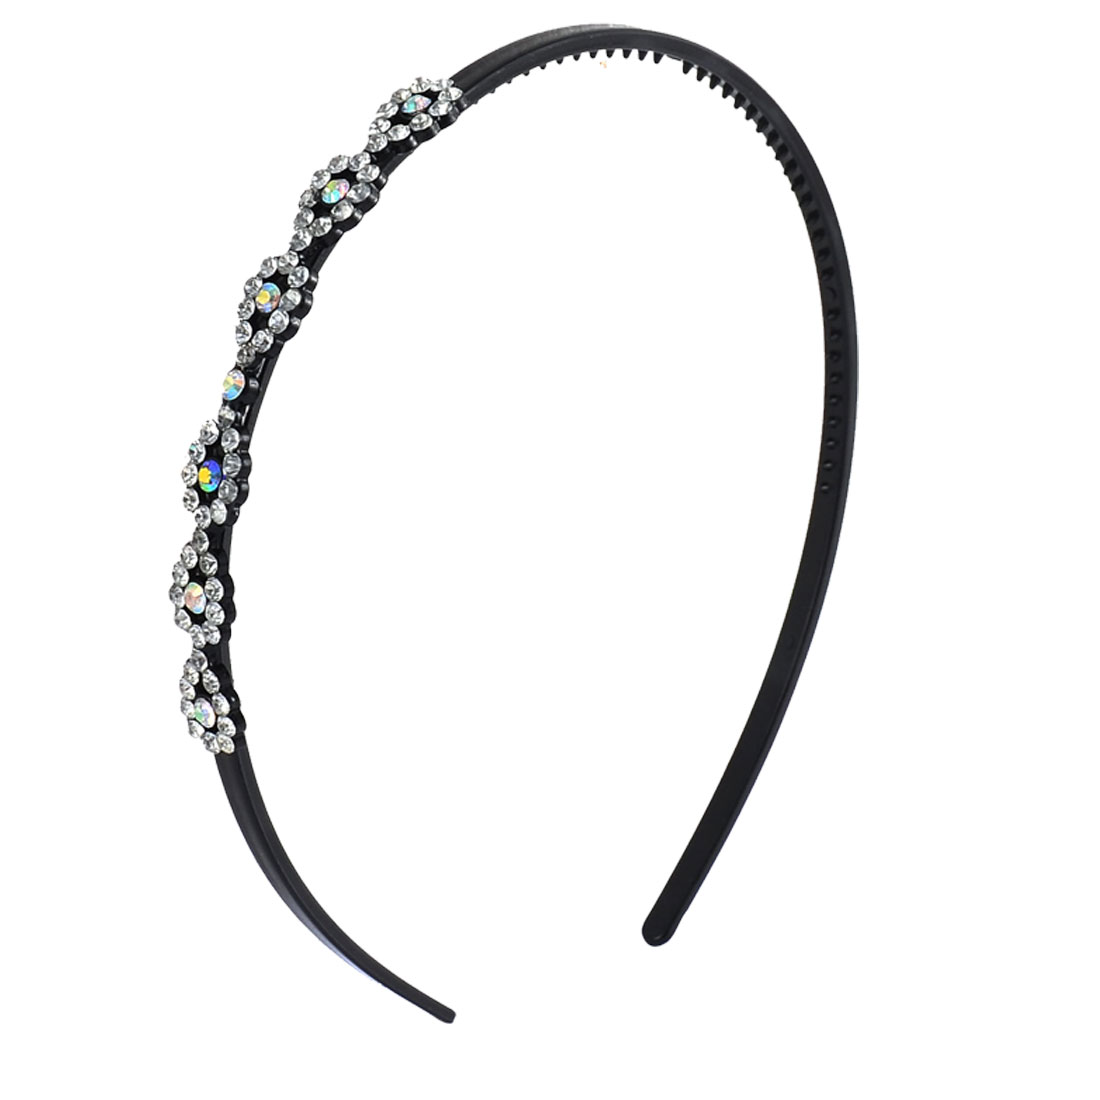 Househld Office Lady Woman Plastic Shiny Rhinestones Decor Headband Hairband